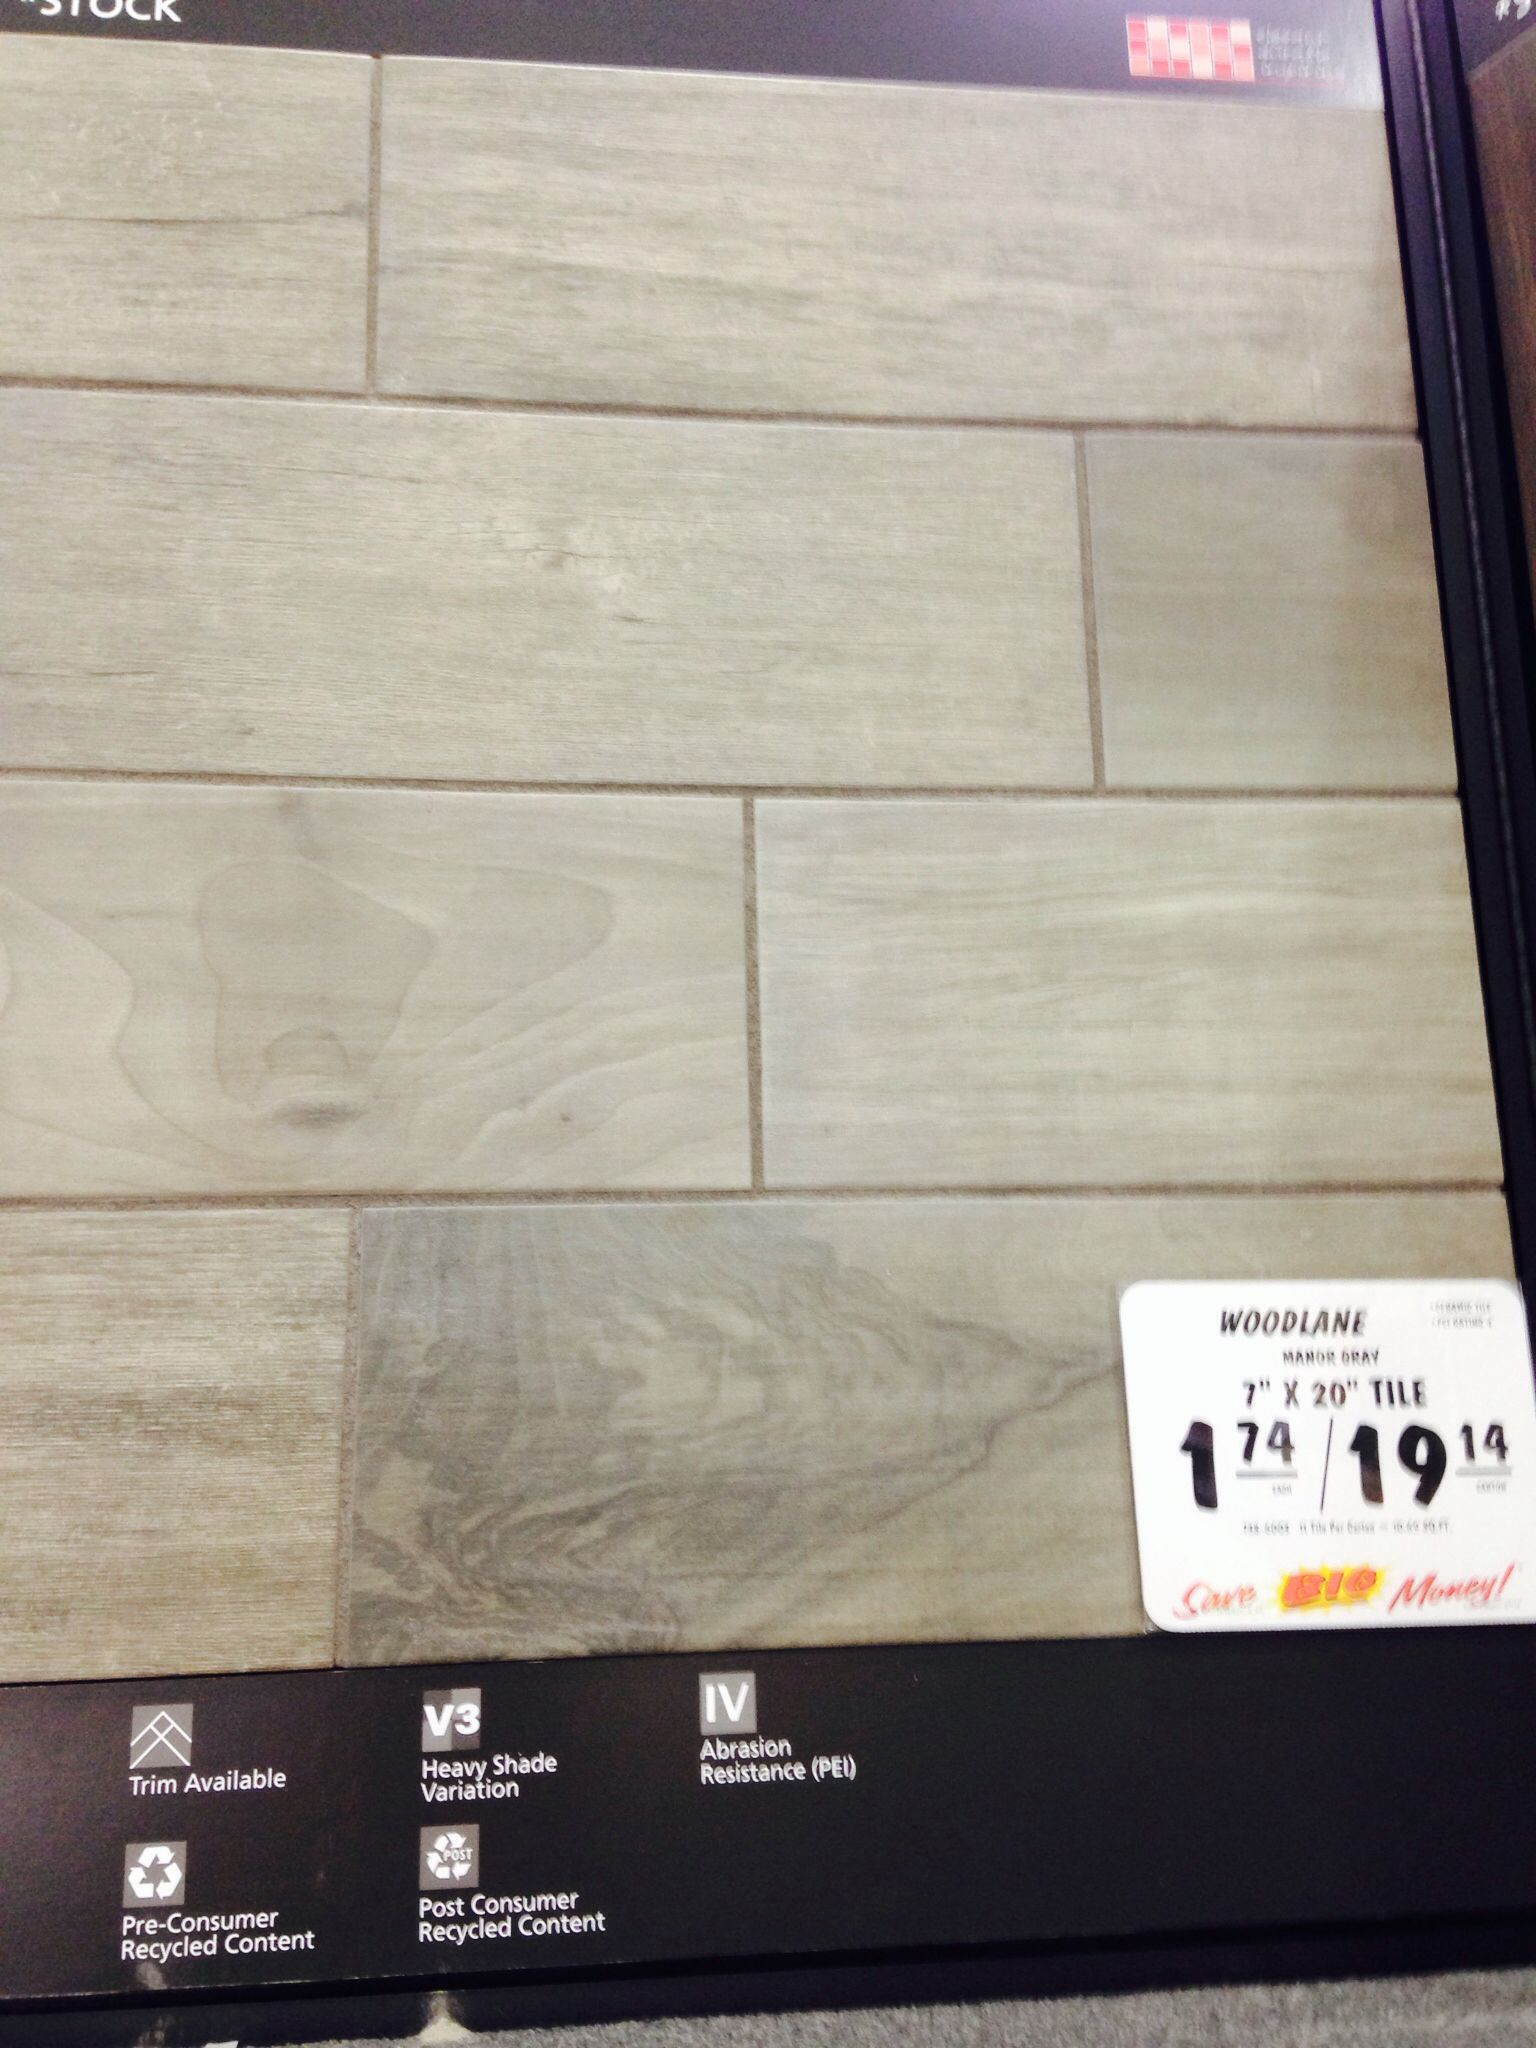 Bathroom flooring. Mohawk Woodlane Floor or Wall Ceramic